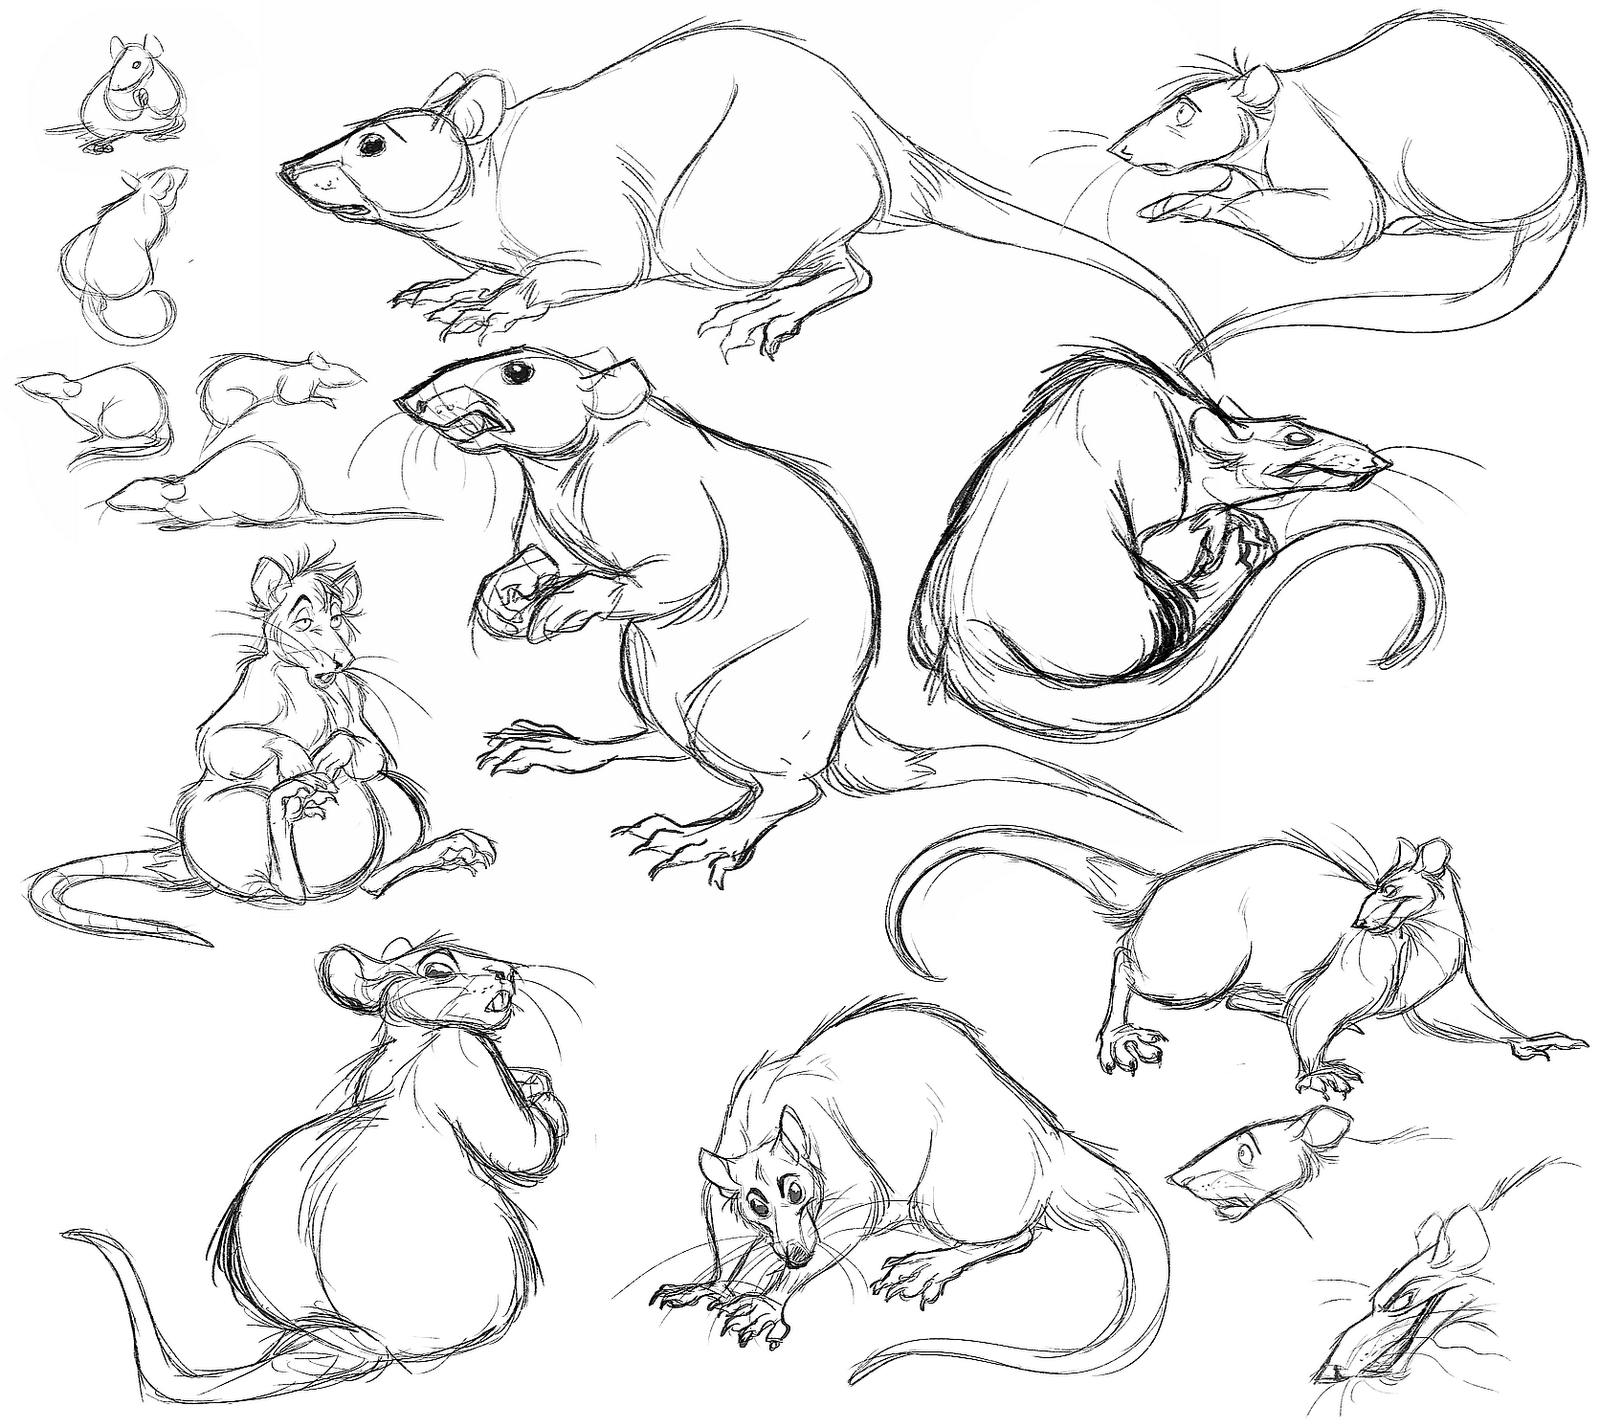 rat drawing rat cartoon drawing in 4 steps with photoshop drawing rat